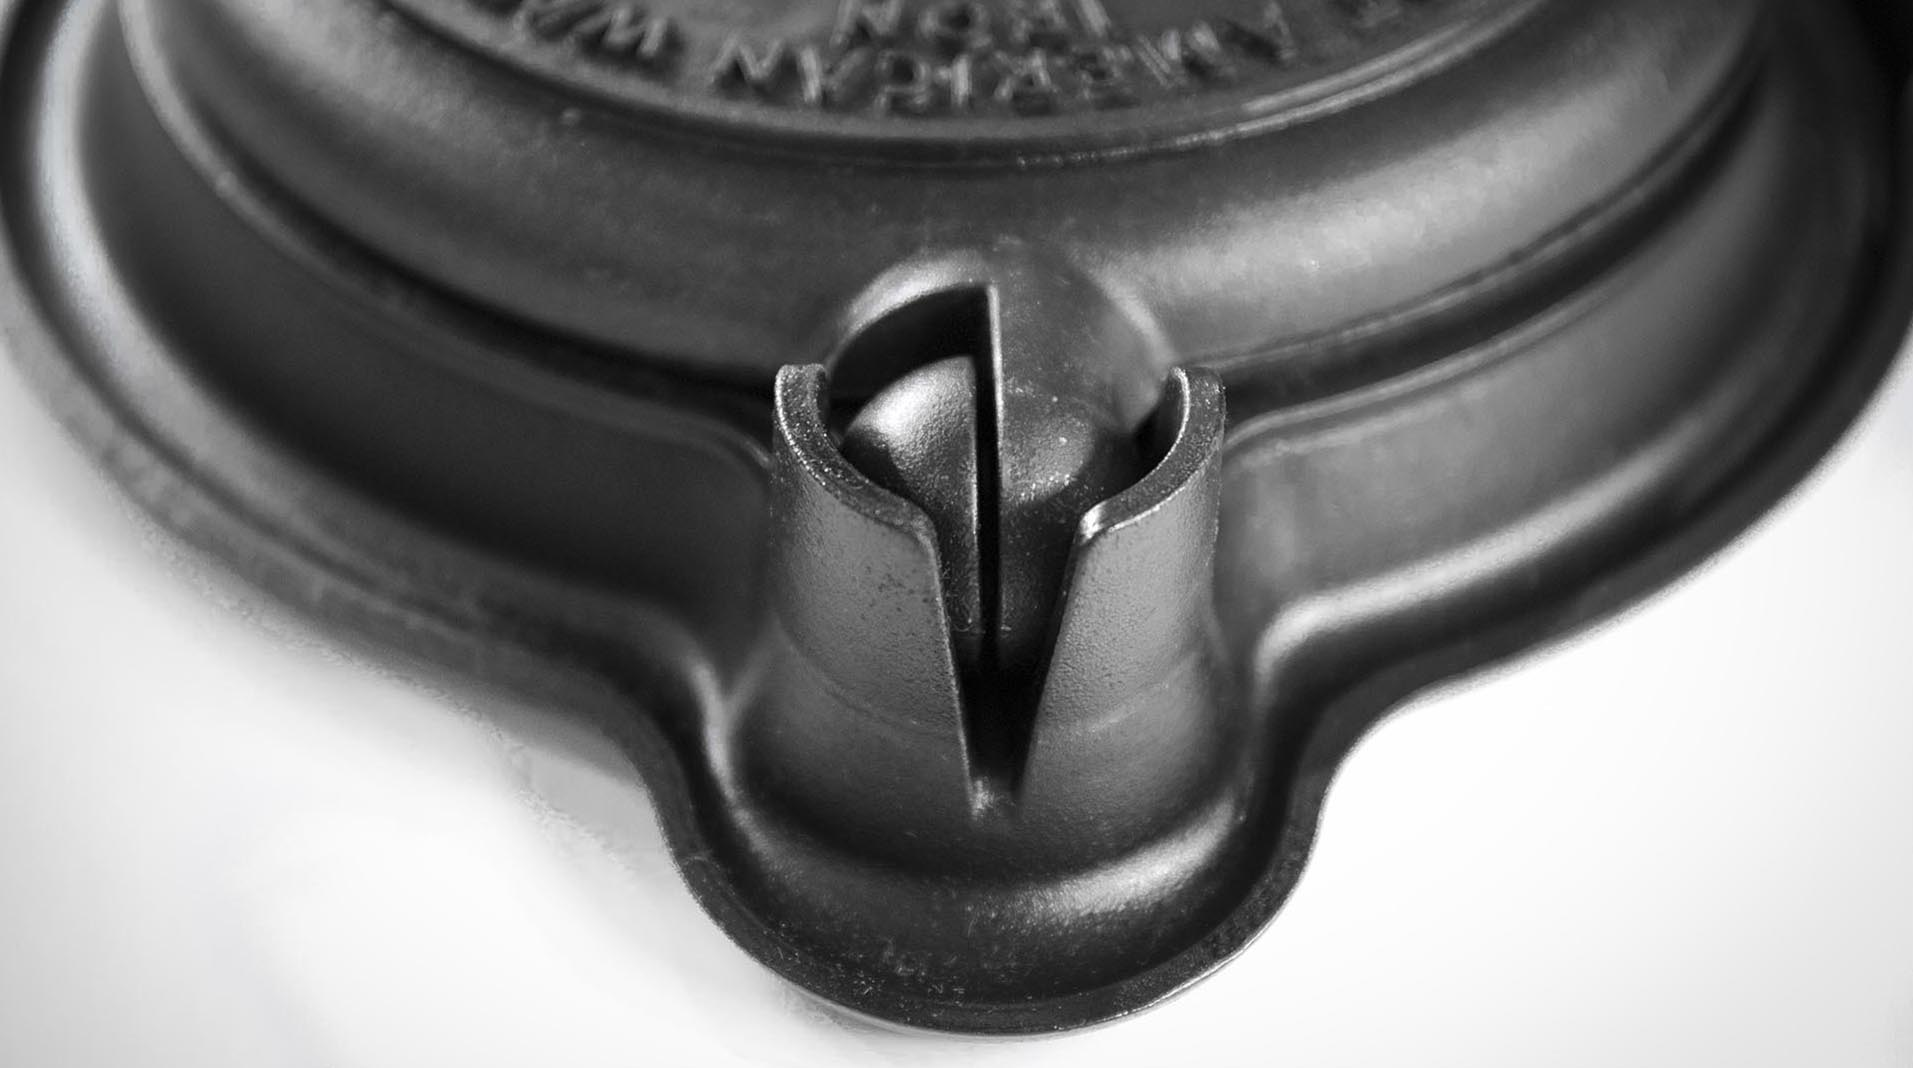 Great American Waffle Iron ball joint